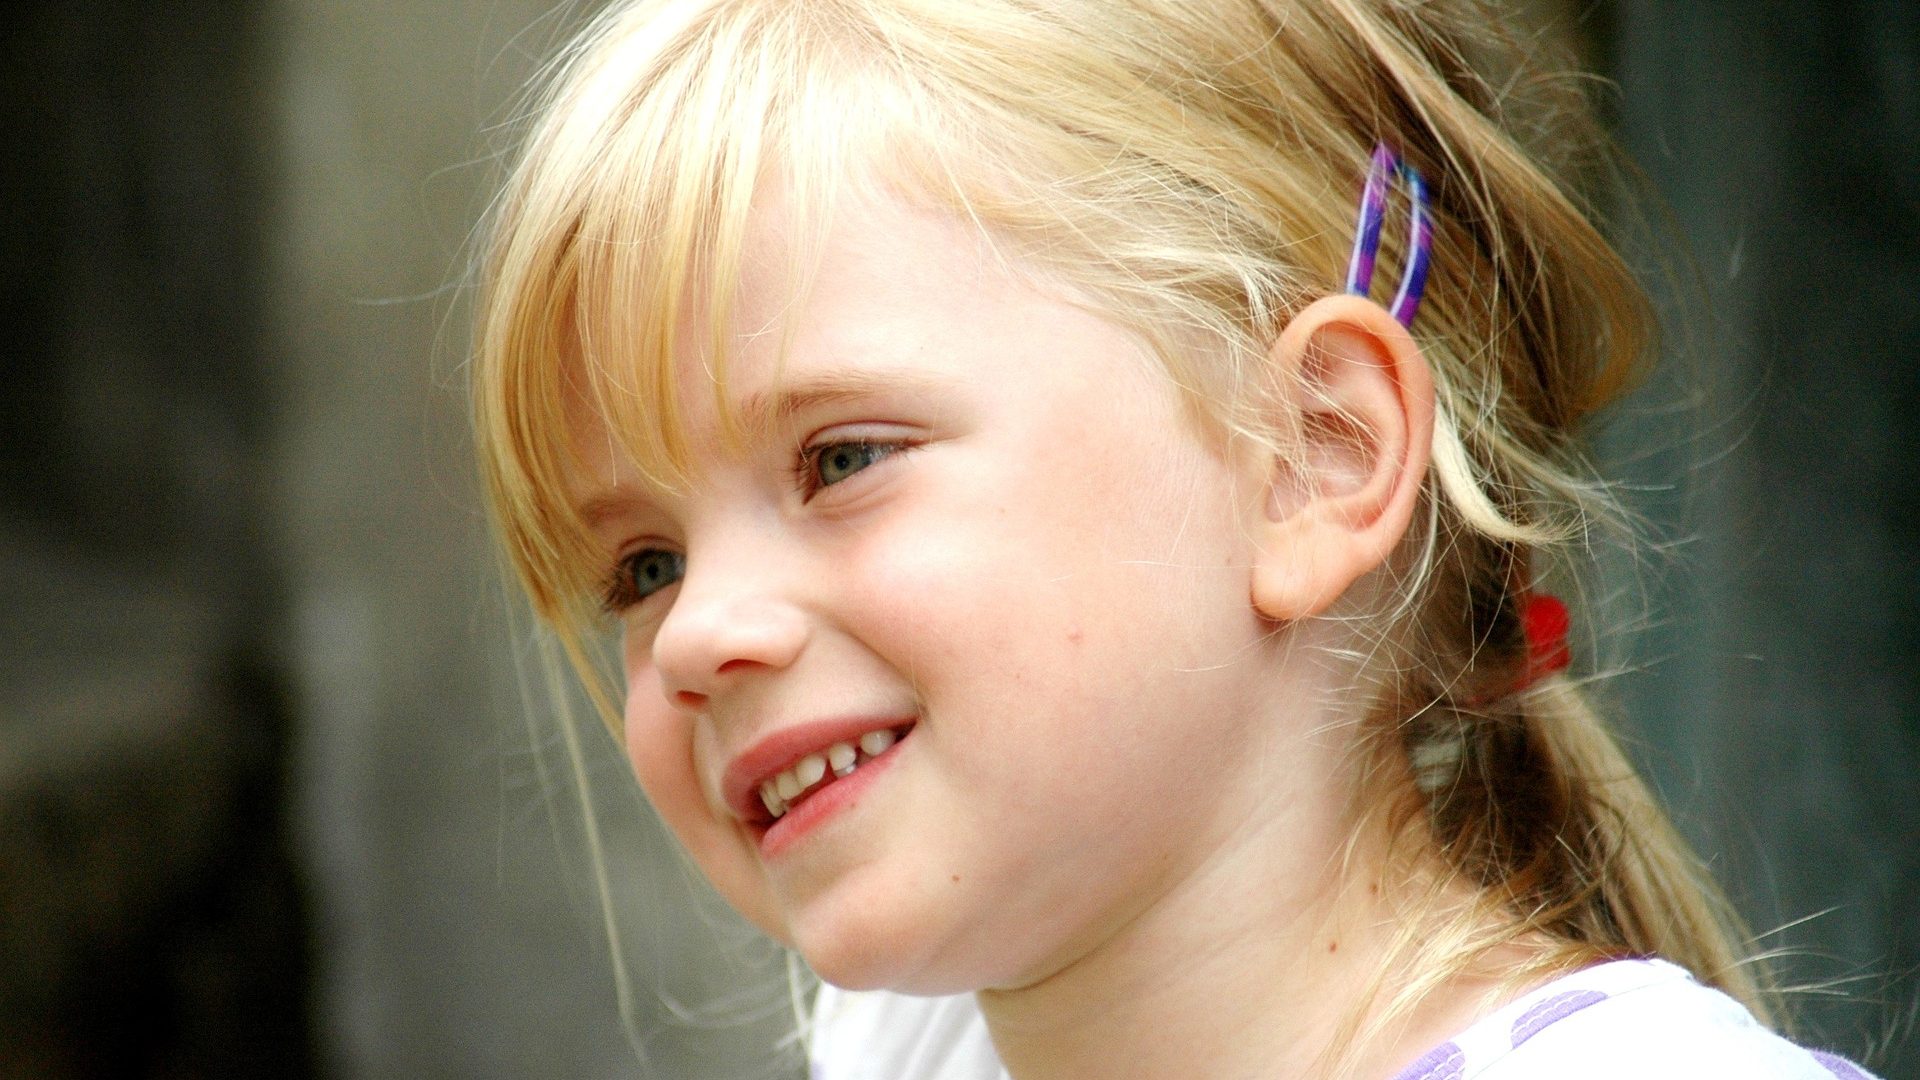 Download 1920x1080 Wallpaper Cute Baby Girl S Smiling Face Blonde